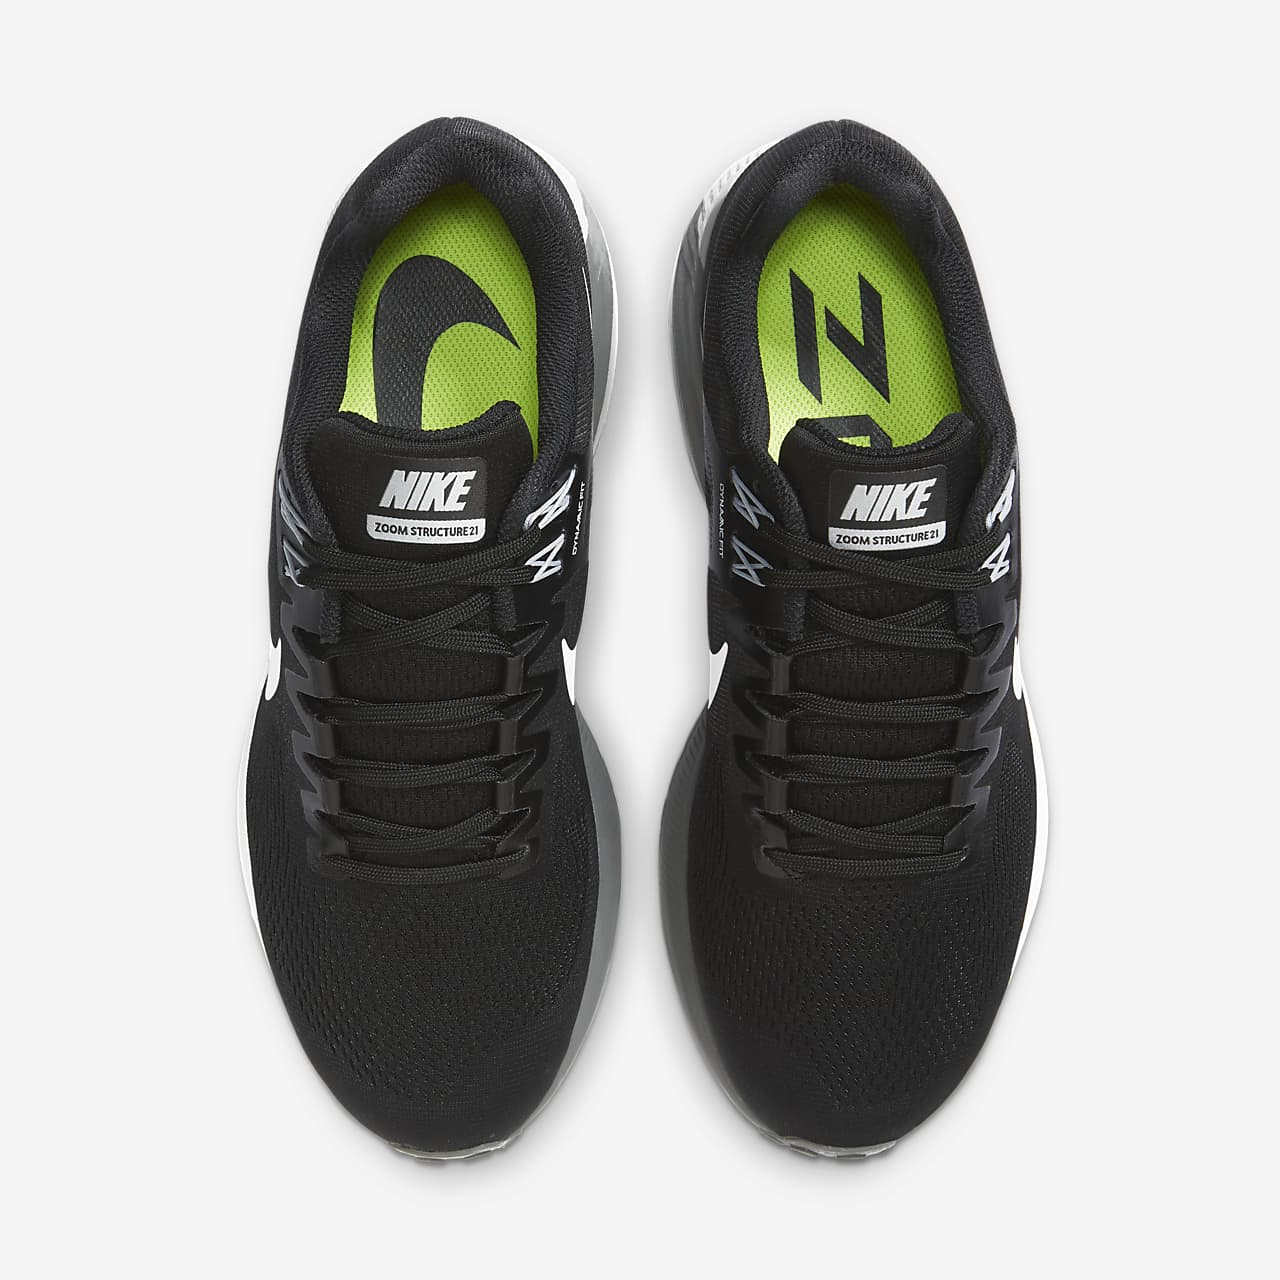 03e301c87e56 Nike Air Zoom Structure 21 Men s Running Shoe. Nike.com